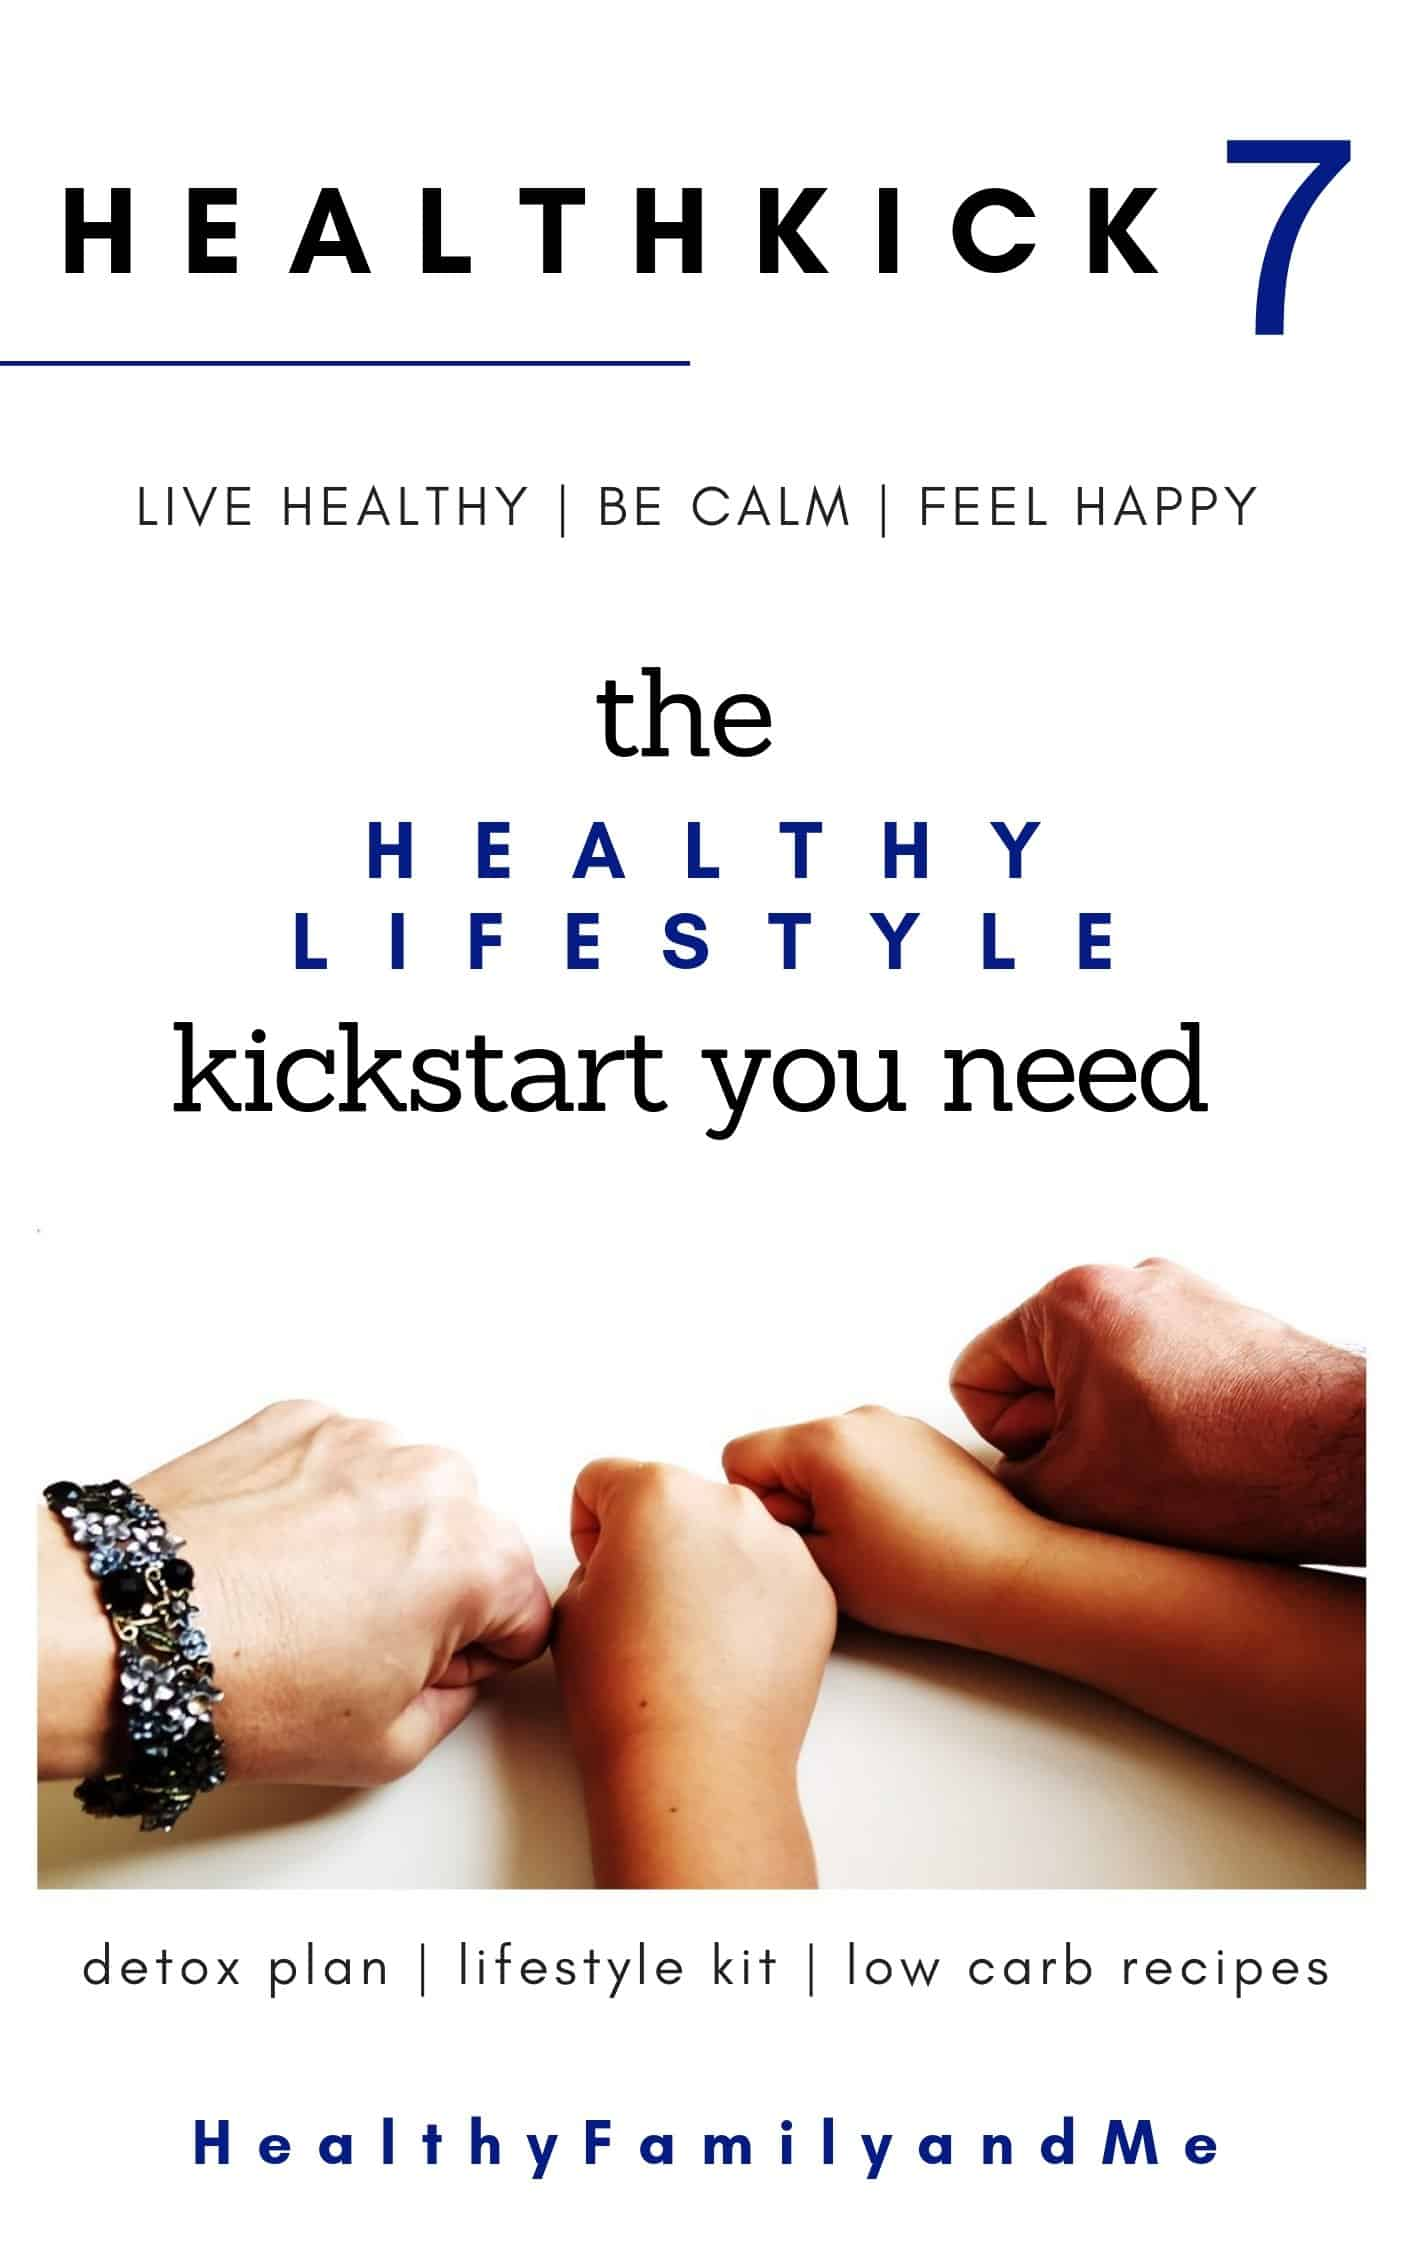 healthkick7 healthy living program